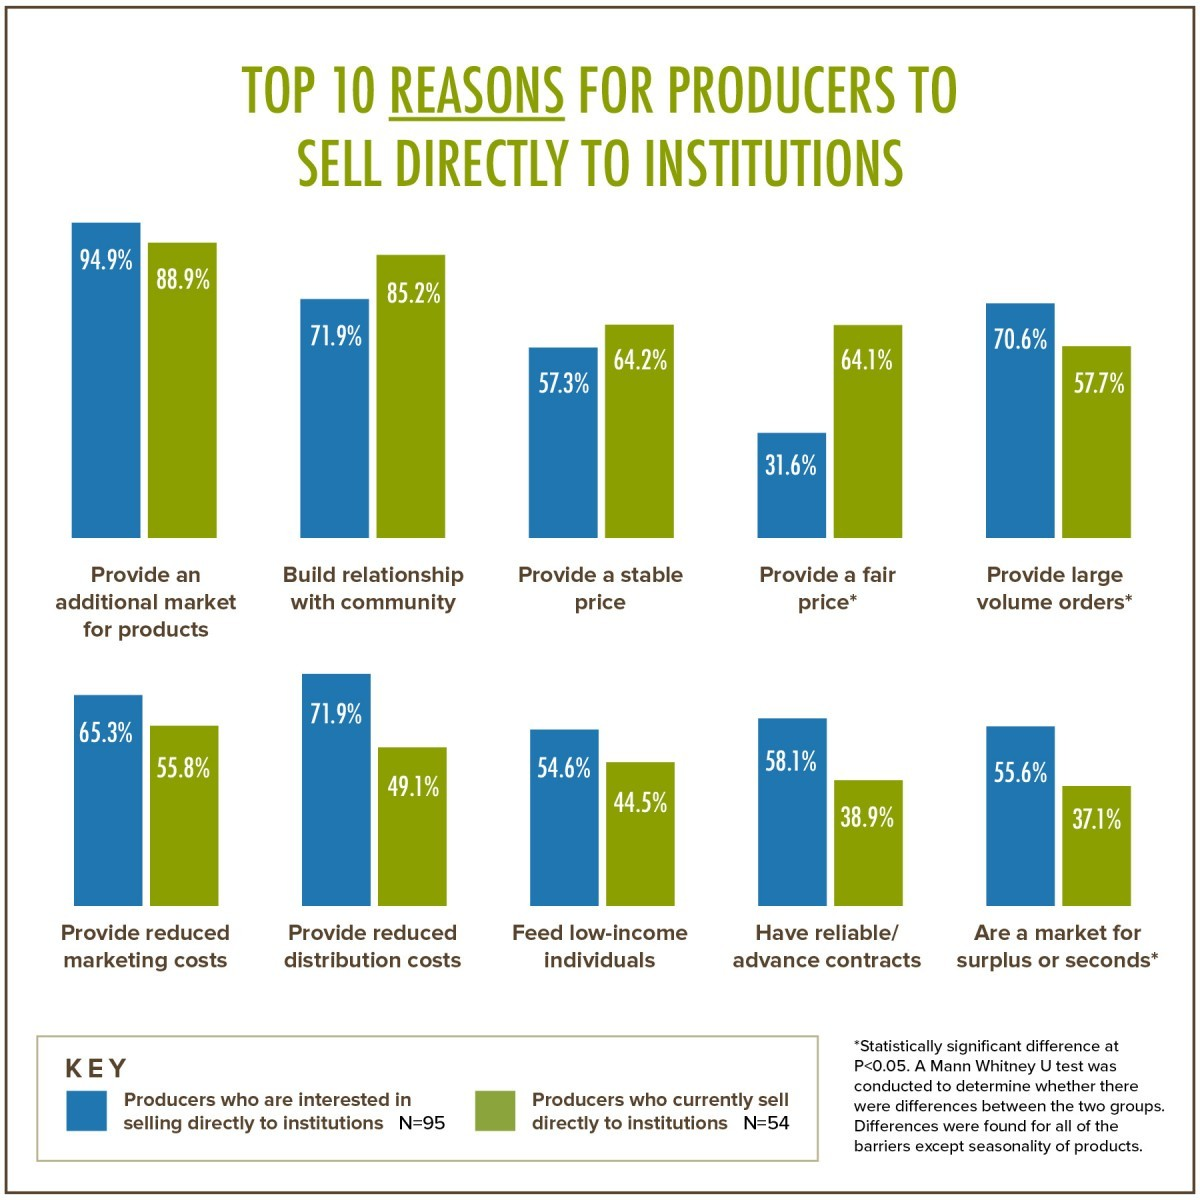 Top 10 Reasons for Producers Sell Directly to Institutions